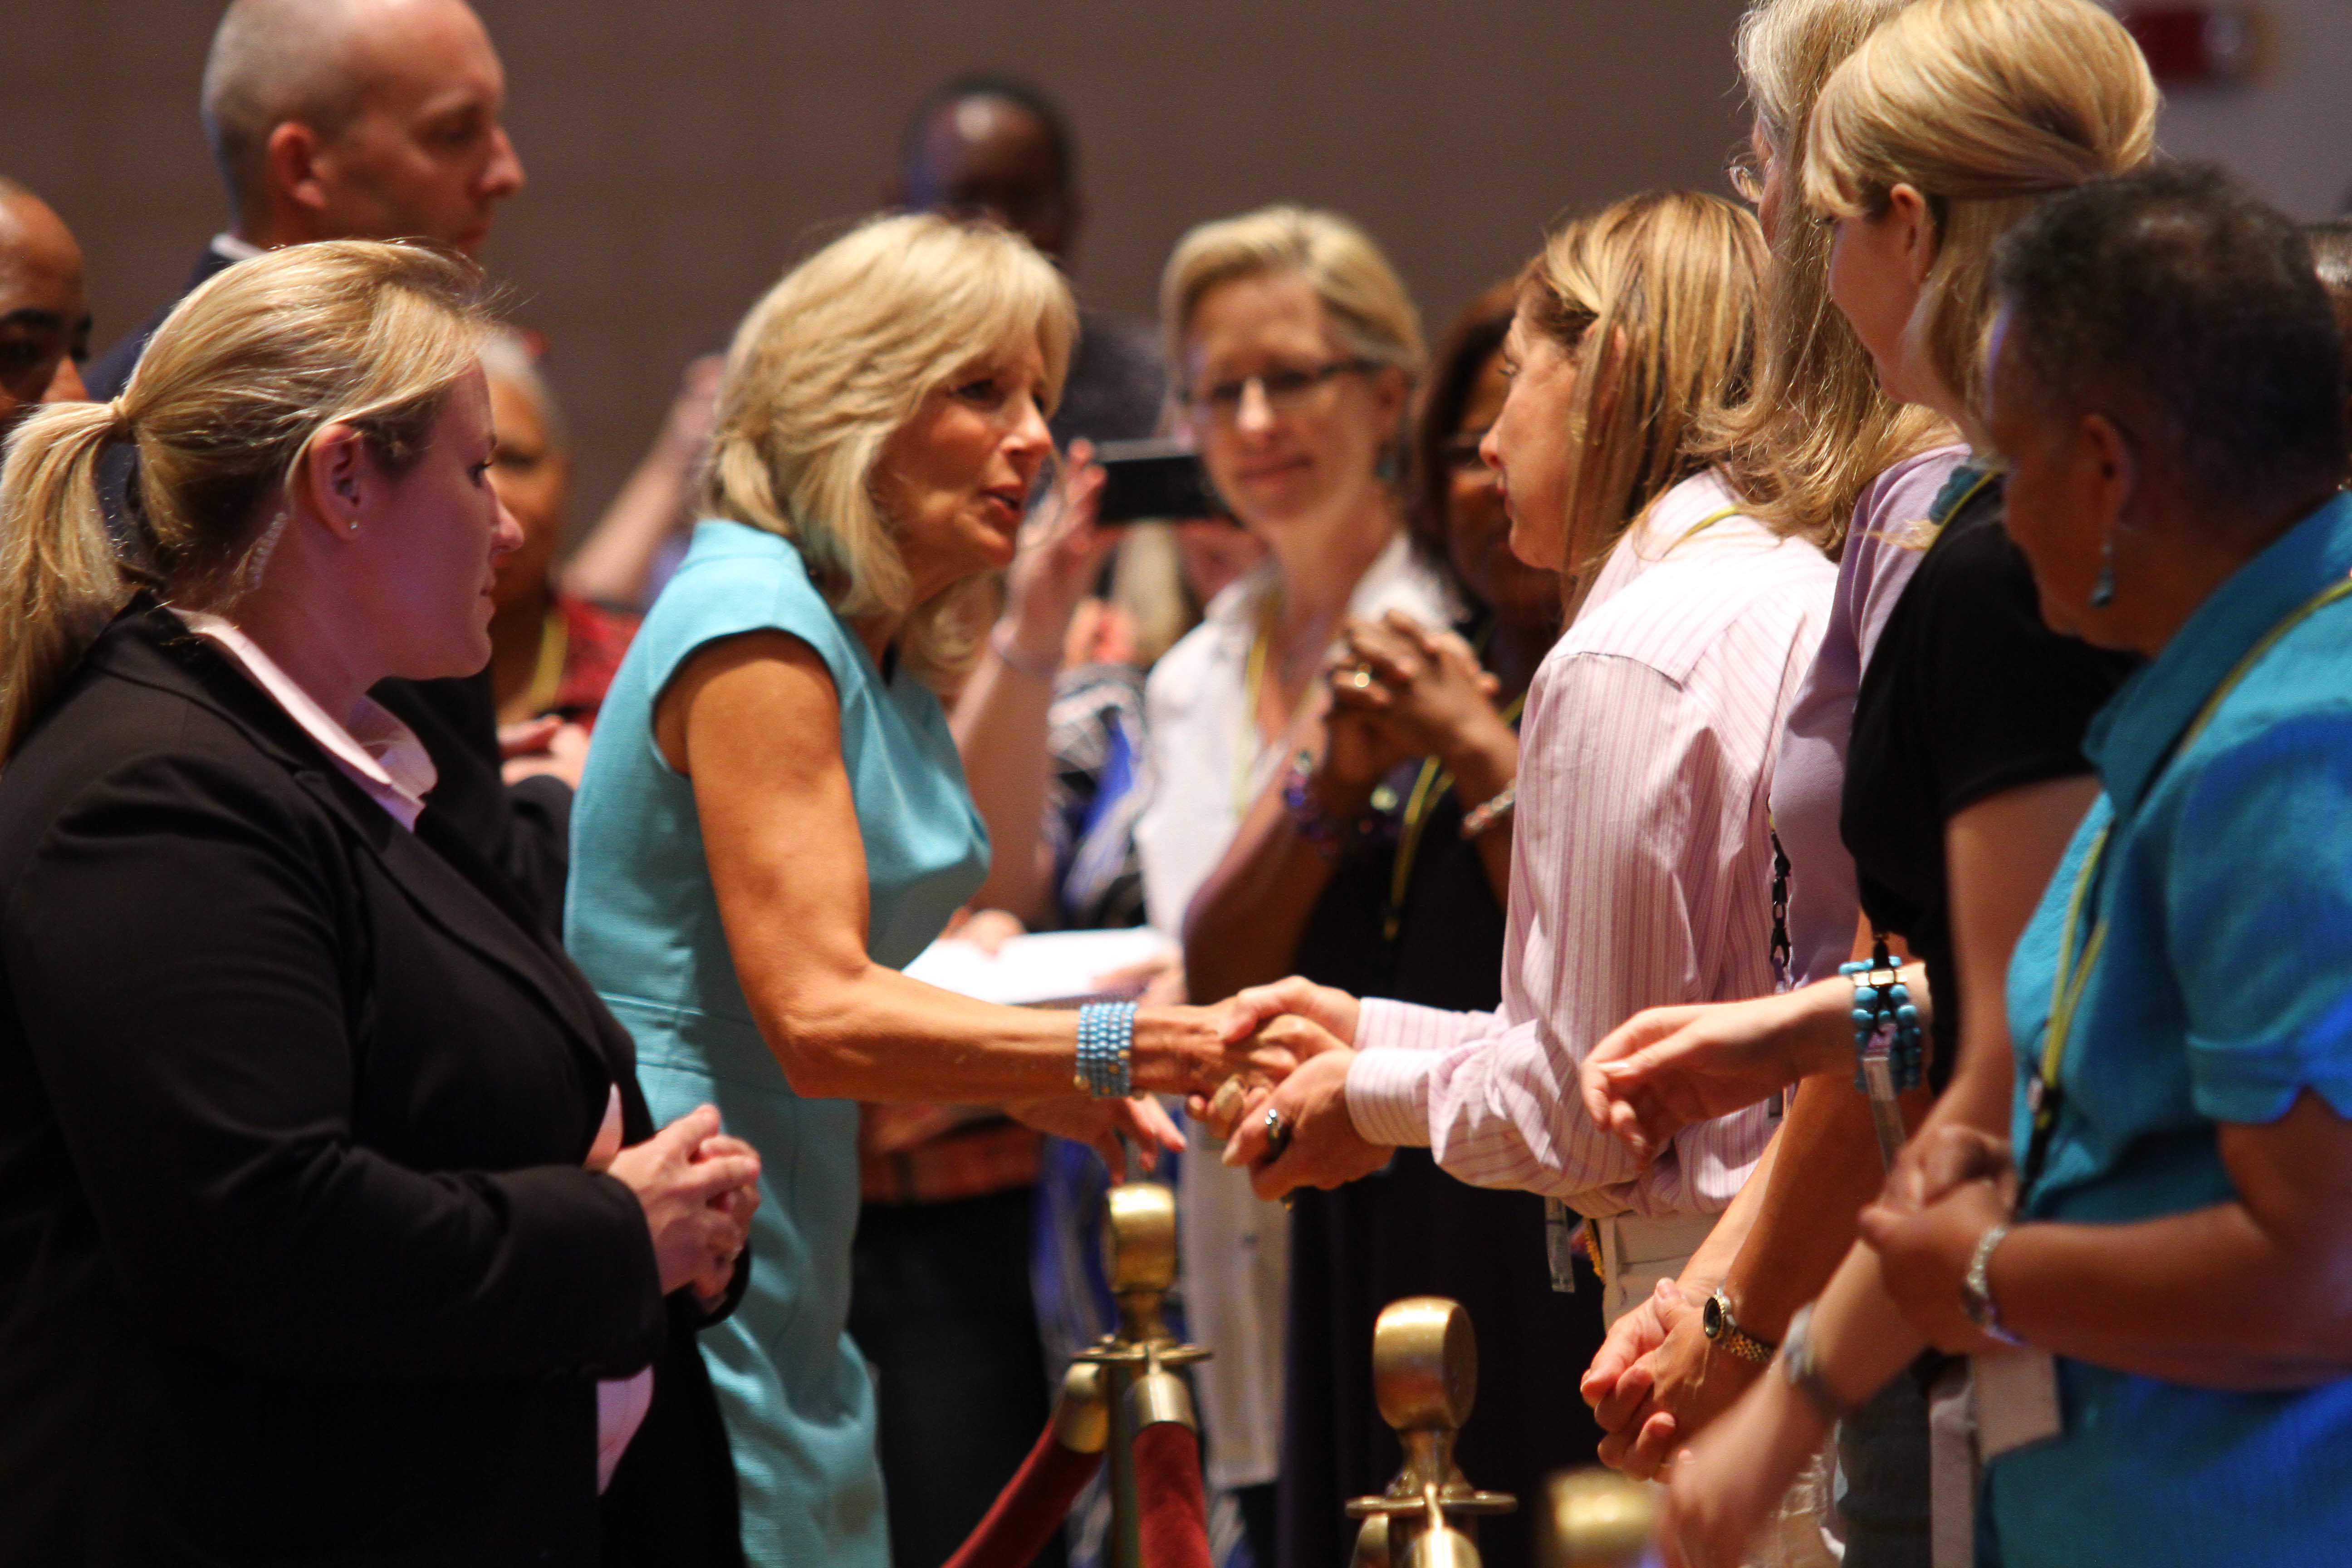 Dr. Biden at the National Association of Social Workers' conference